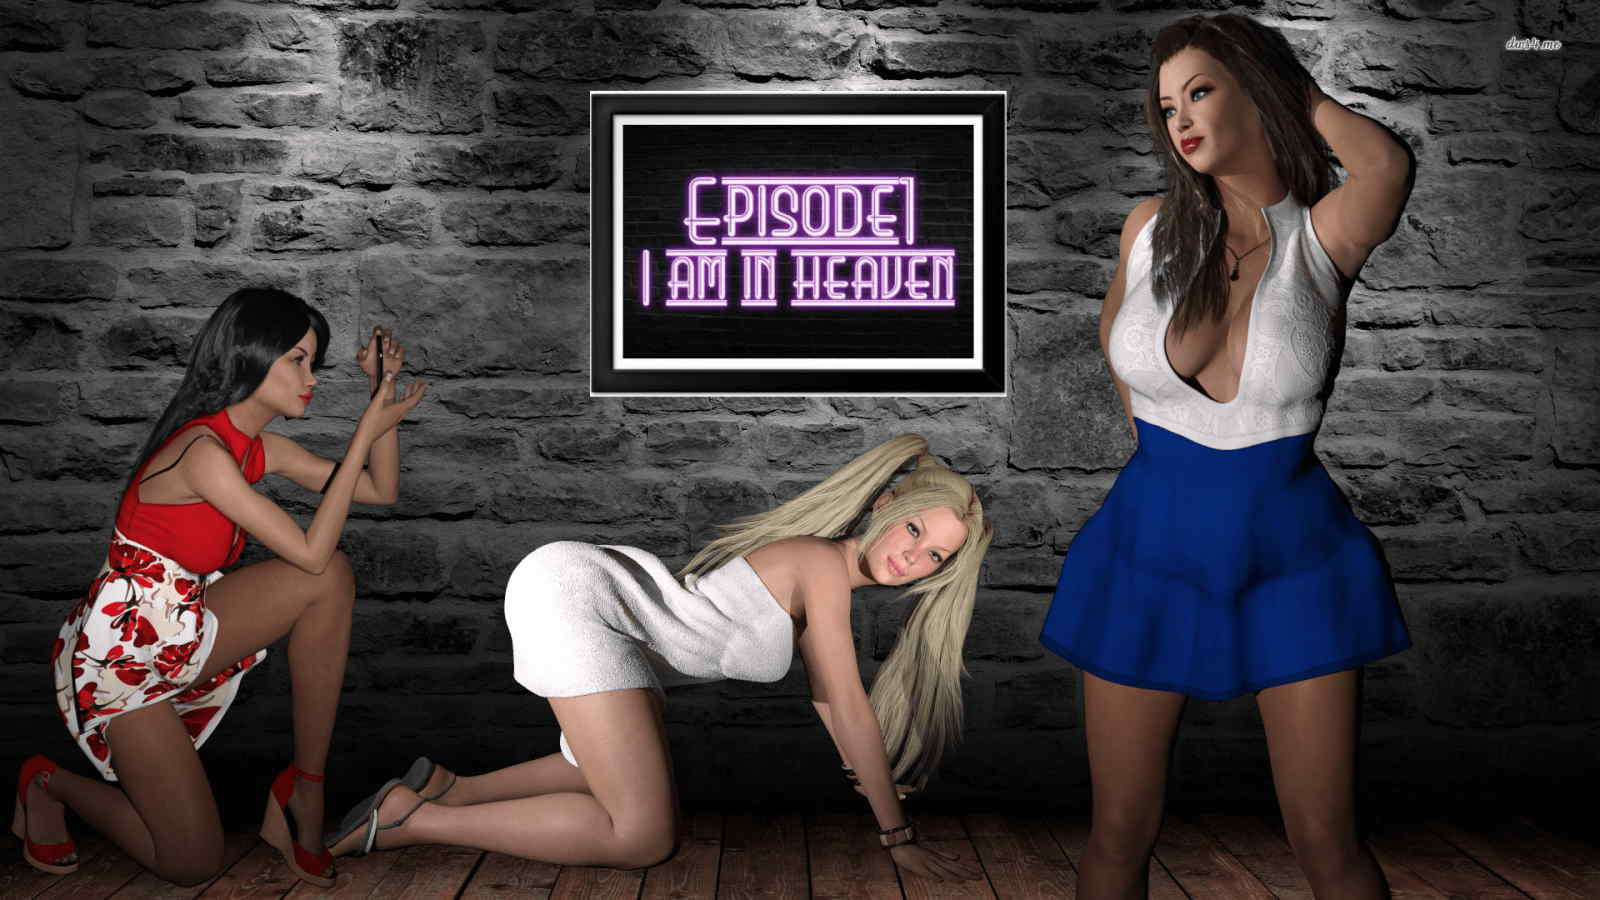 I am in heaven Adult Game Cover